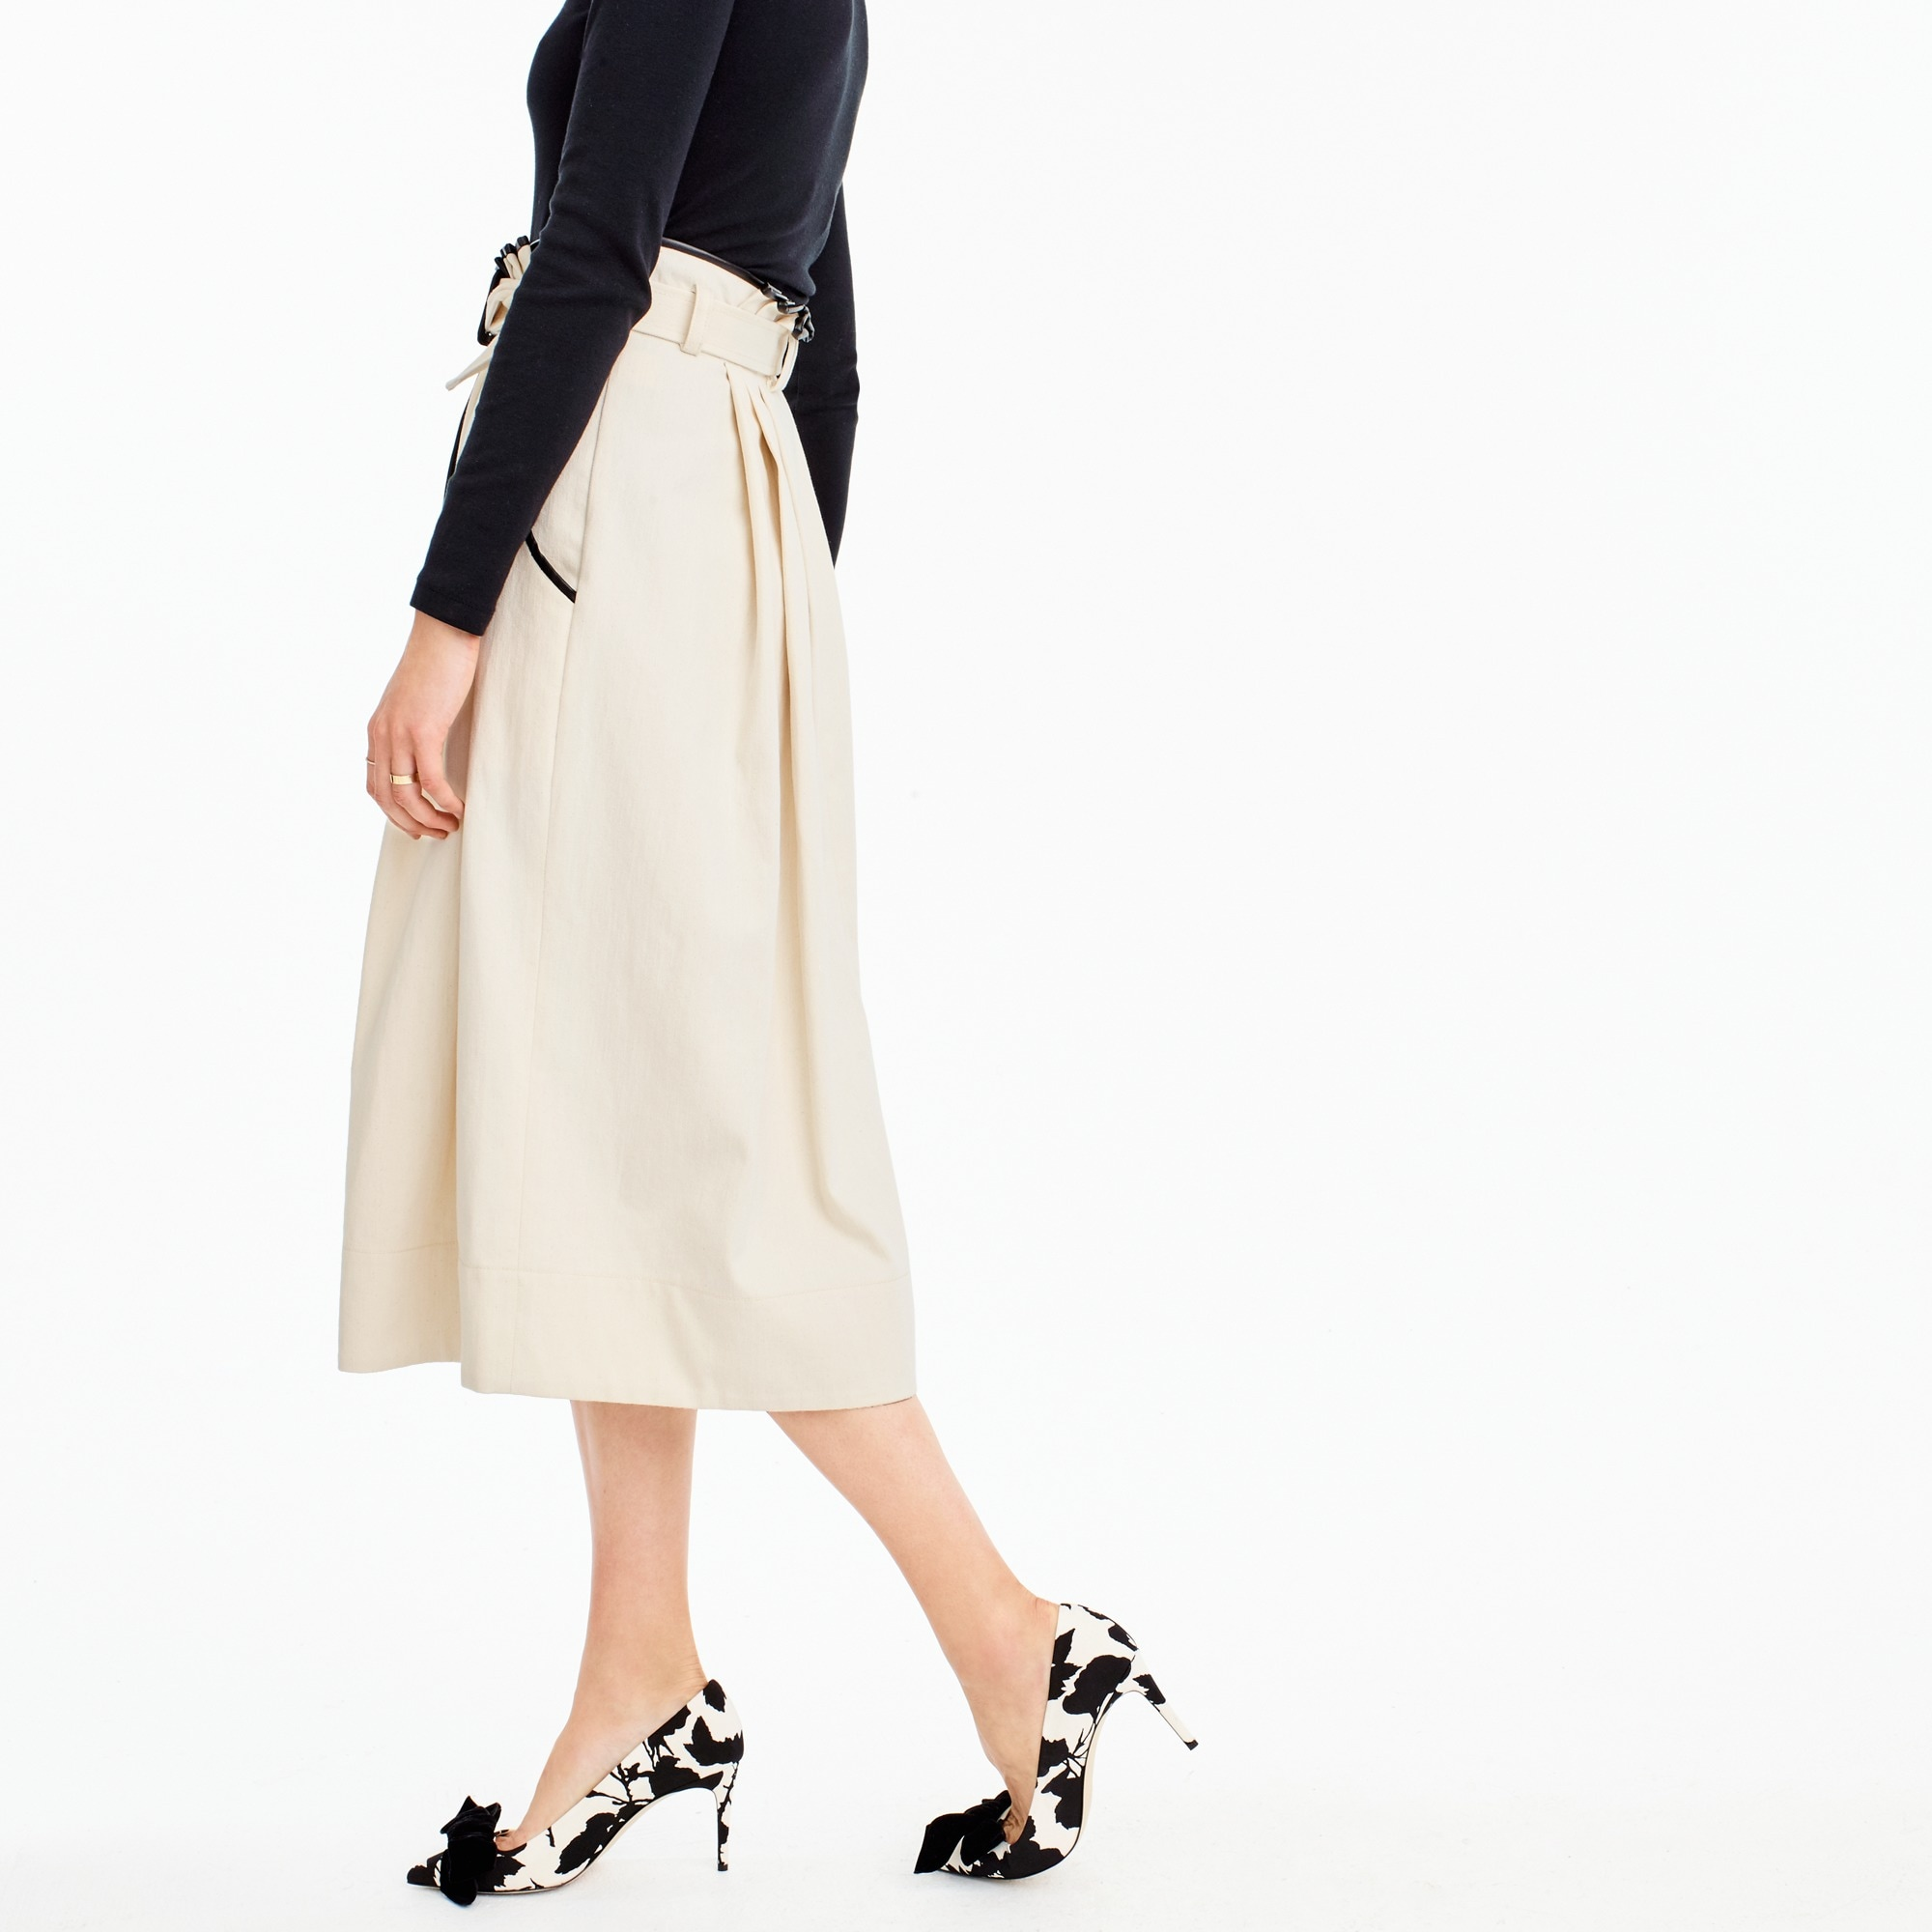 Image 4 for Collection pleated skirt in natural denim with leather